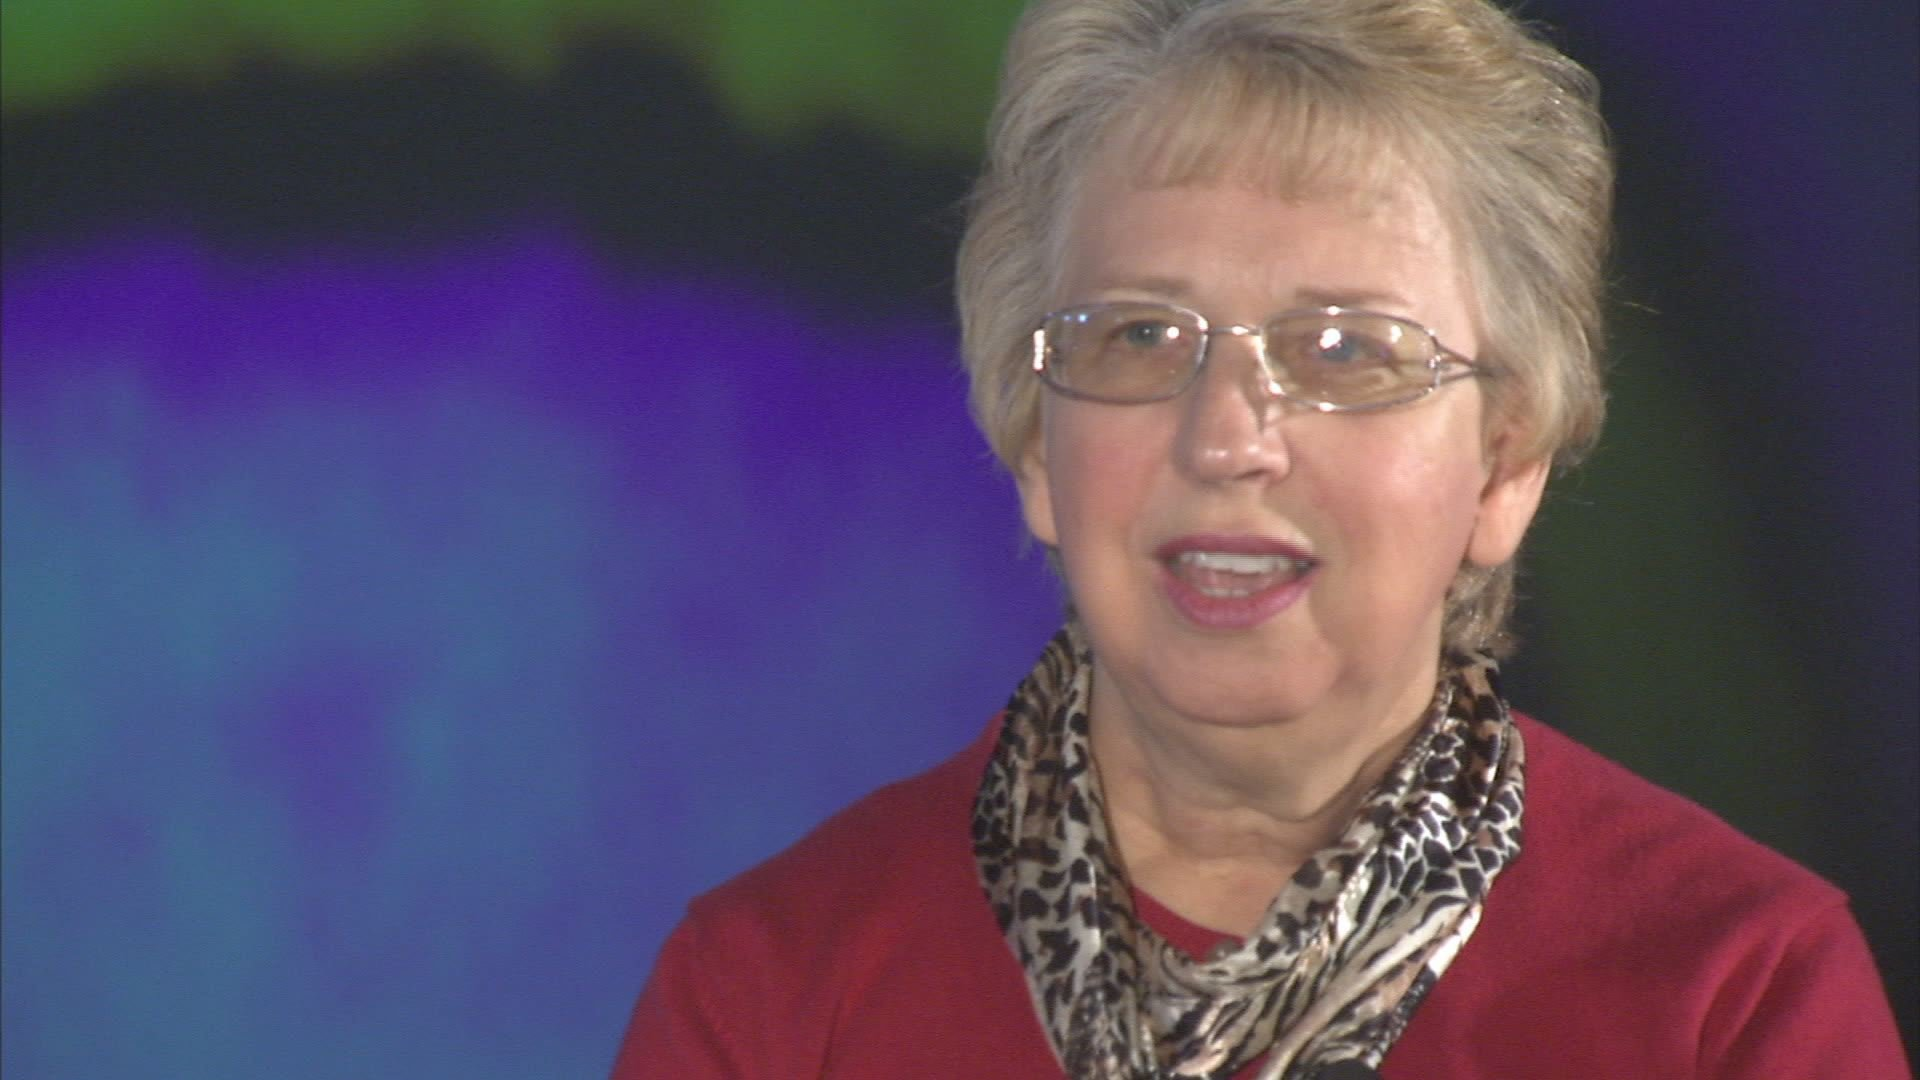 Ebola survivor Nancy Writebol sat down and talked with KHQ about her experience with the devastating disease